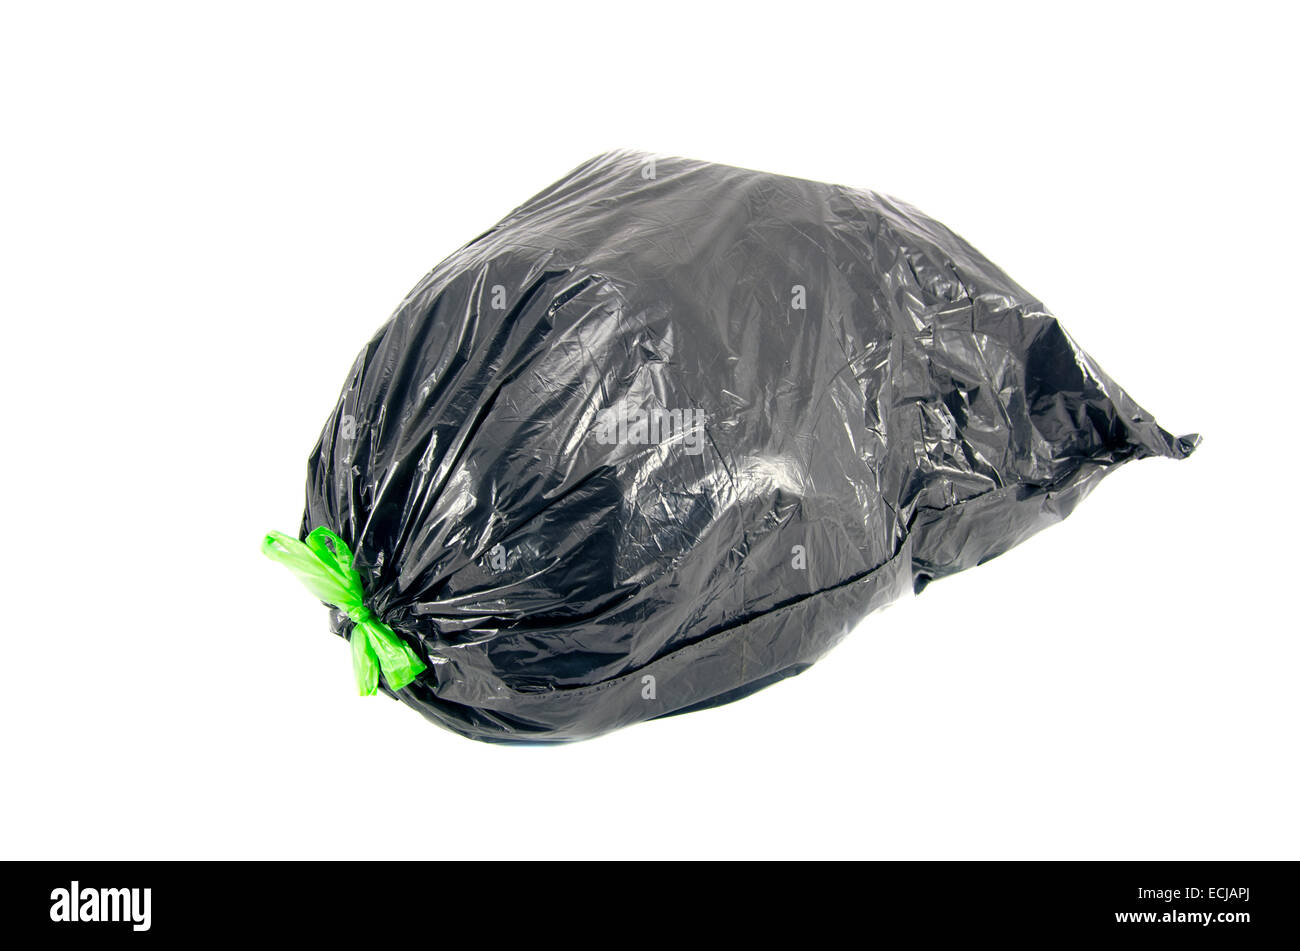 black garbage rubbish bag on white background with clipping path isolated on white - Stock Image